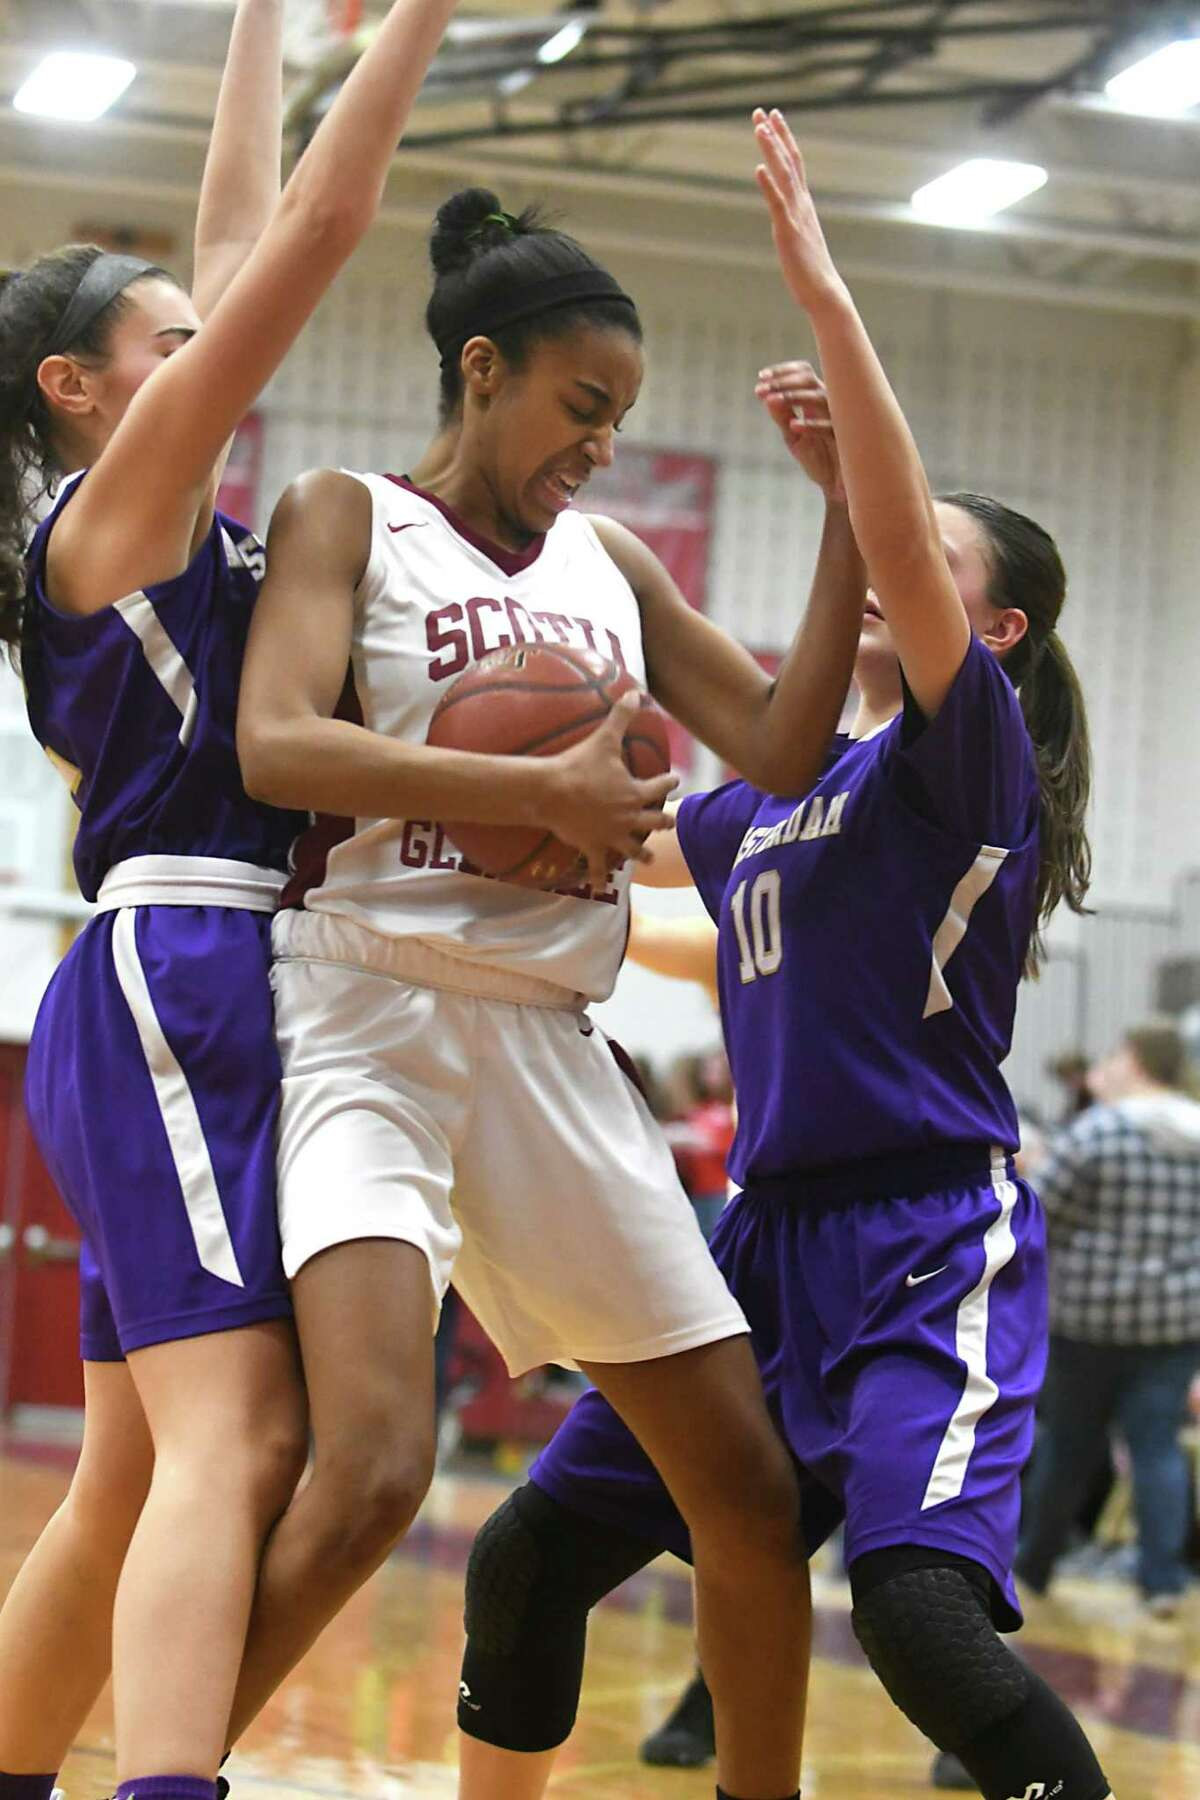 Scotia's Rhaymi Porter grabs a rebound and is surrounded by Amsterdam players during a basketball game on Monday, Jan. 22, 2018 in Scotia, N.Y. (Lori Van Buren/Times Union)